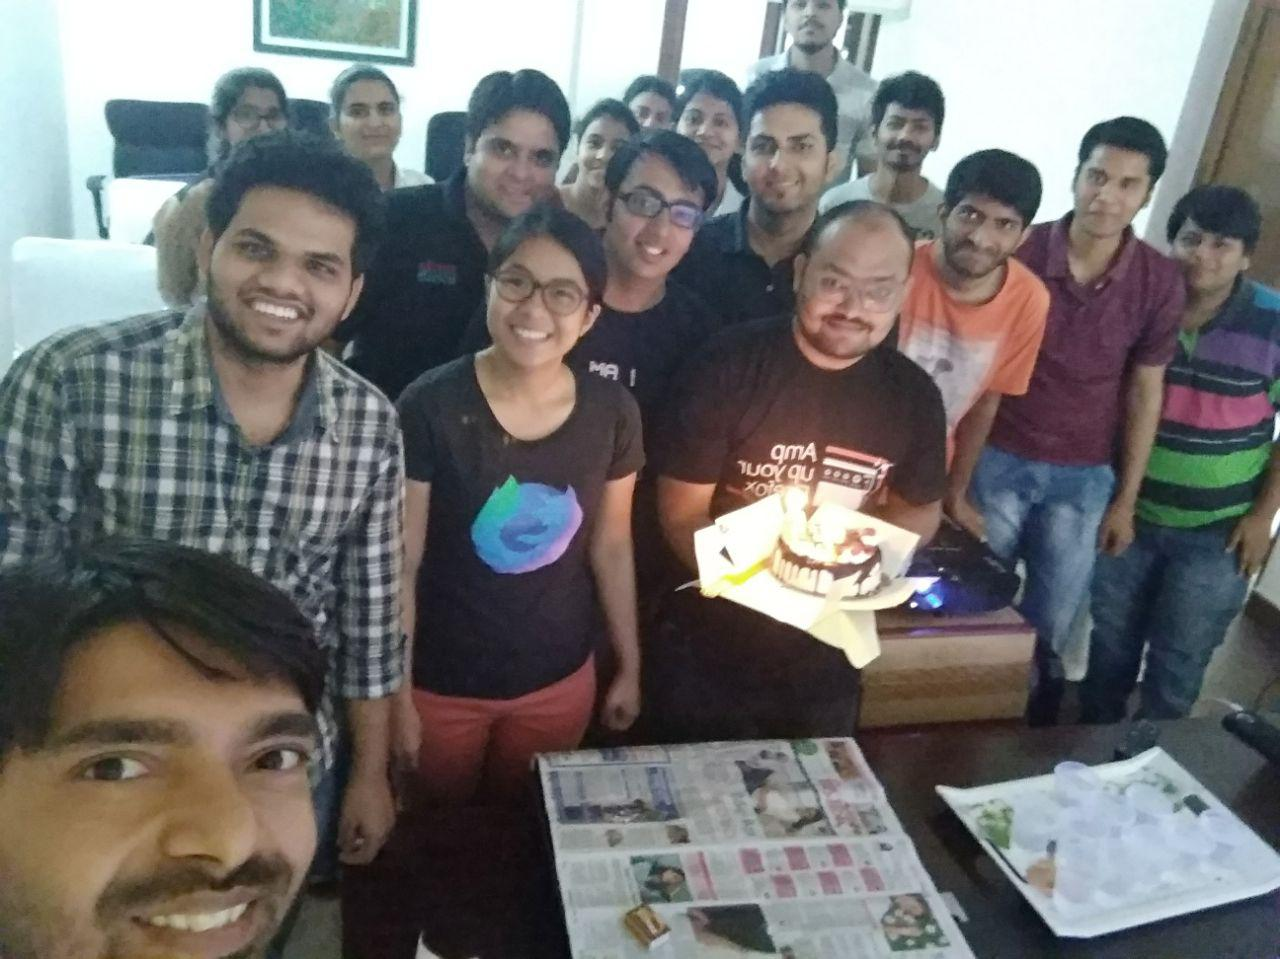 Digital Security Training at Mozilla's 20th Anniversary Celebrations